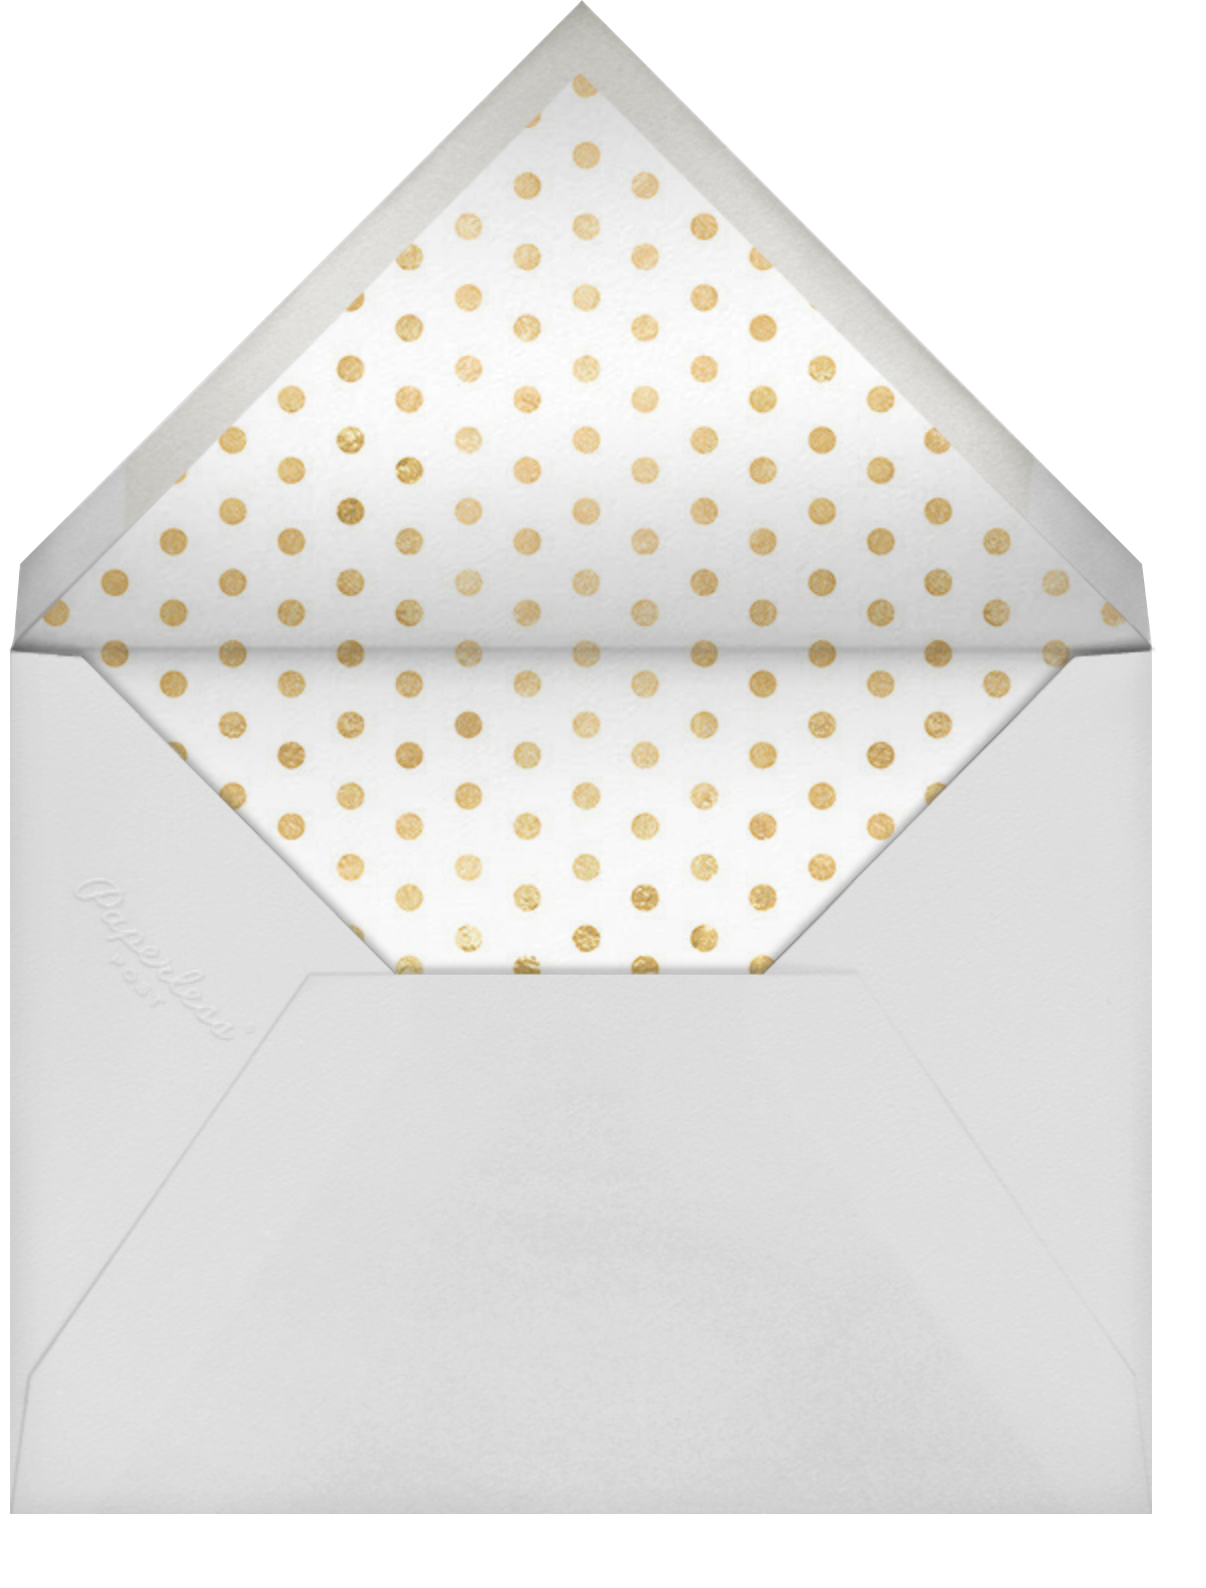 Buttercup Garland - Rifle Paper Co. - Adult birthday - envelope back